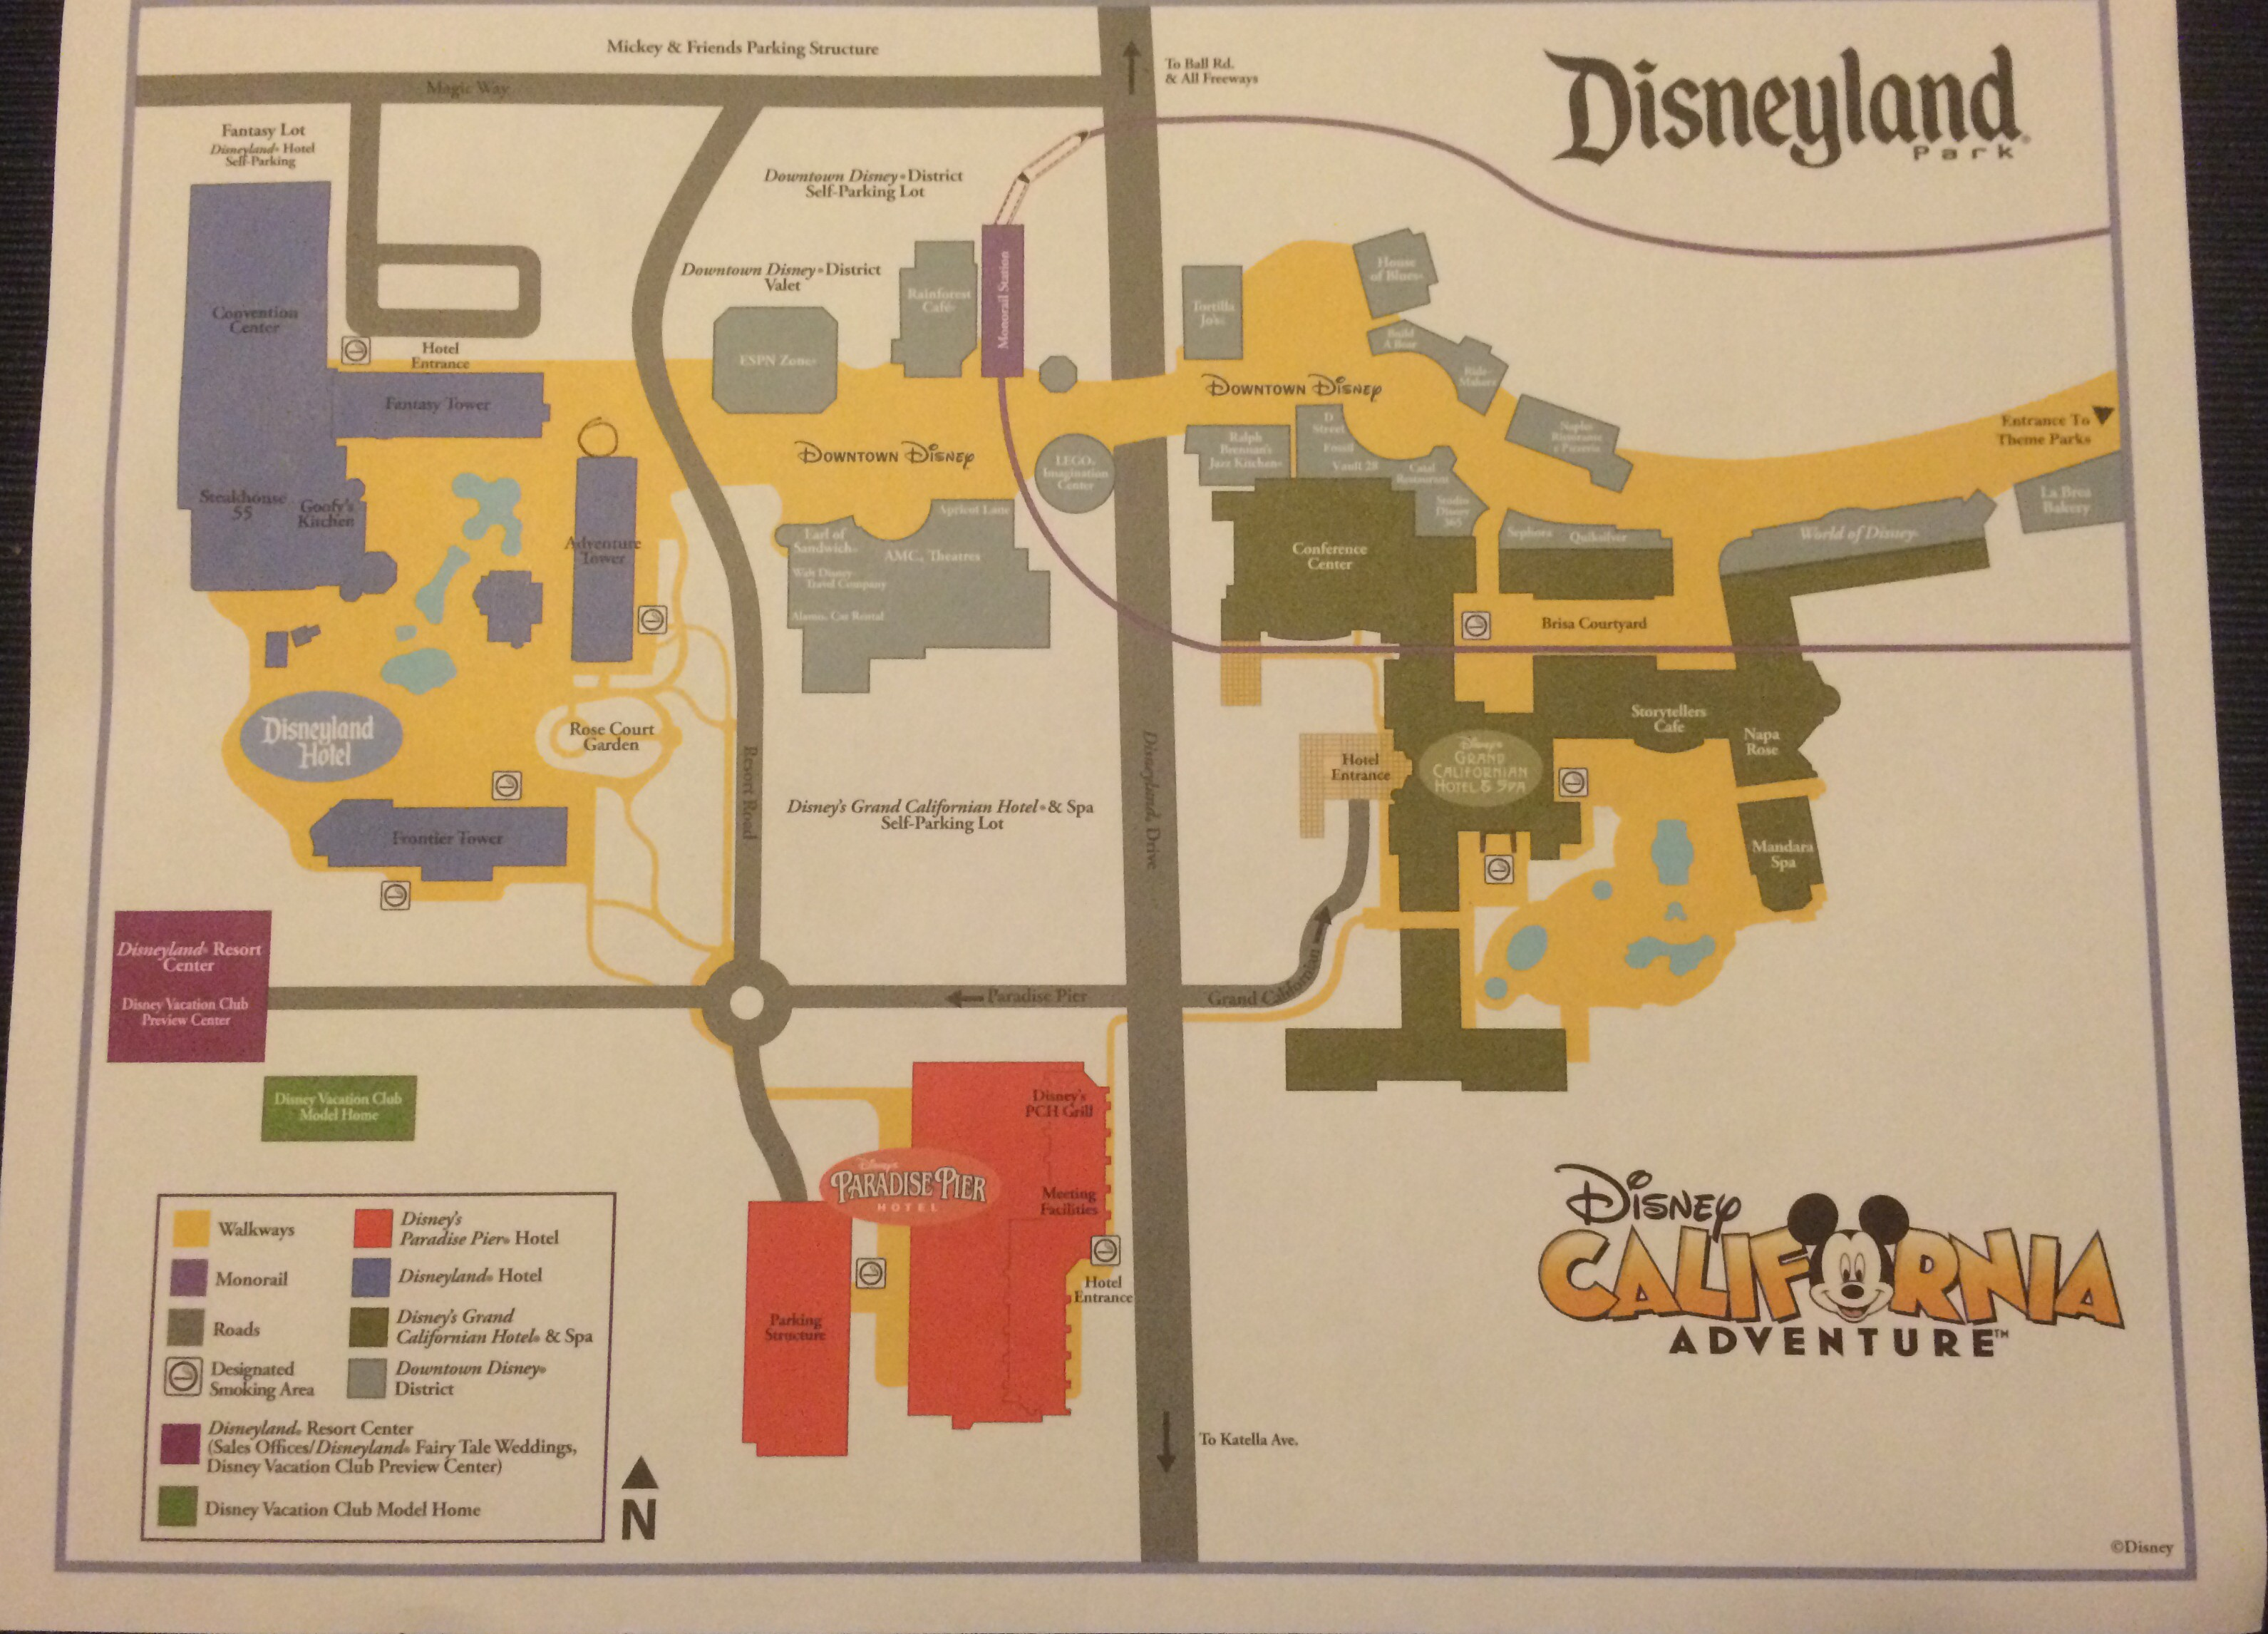 Staying At The Disneyland Hotel Was Absolute Magic Why I RunDisney - Los angeles map disneyland